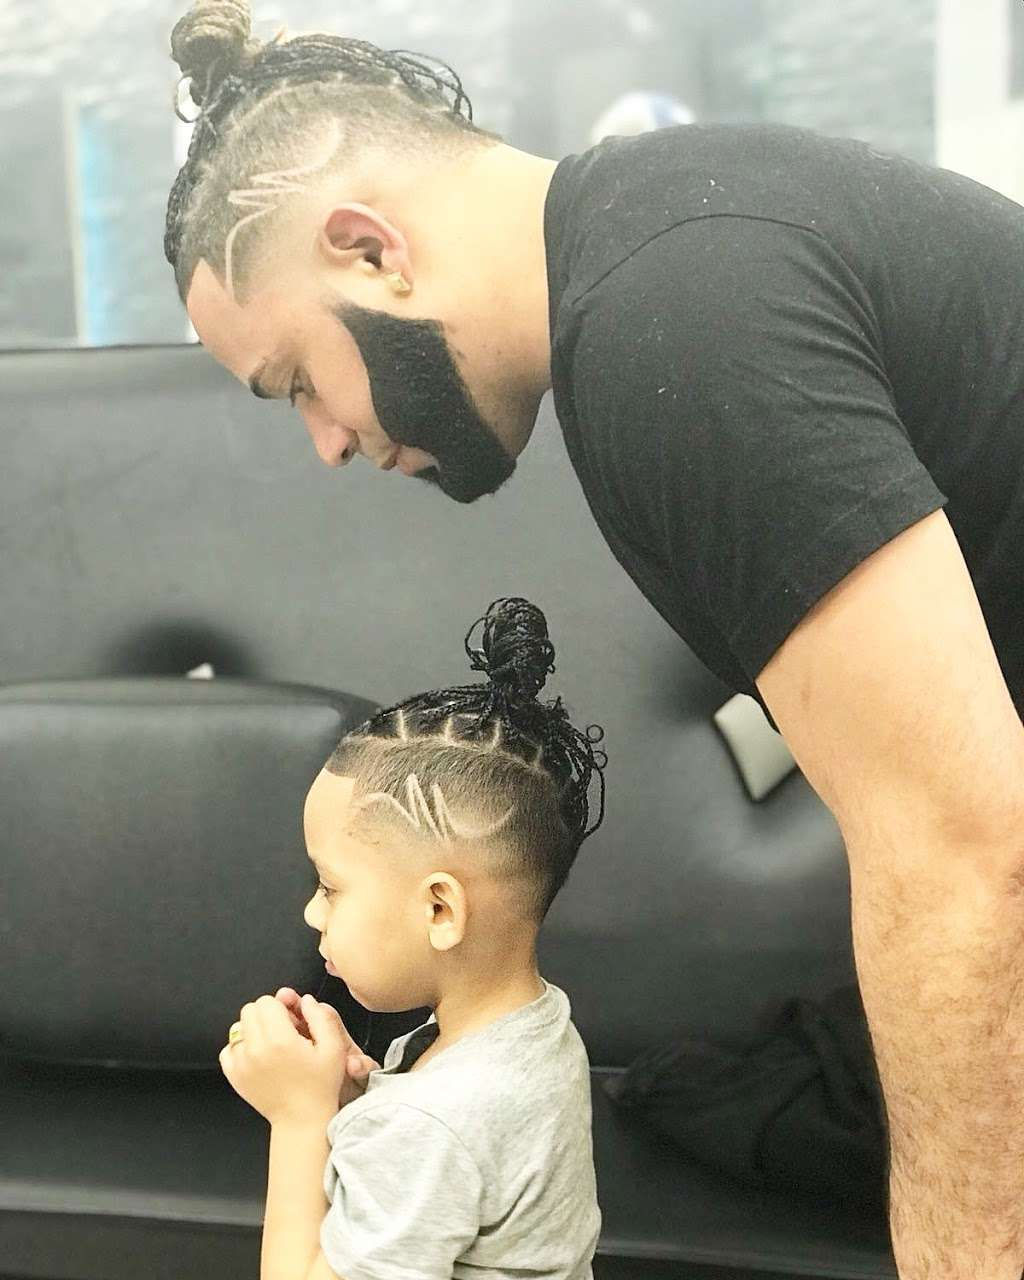 High Qualitys Barber Shop - hair care  | Photo 9 of 10 | Address: 390 E Tremont Ave, Bronx, NY 10457, USA | Phone: (347) 990-7997